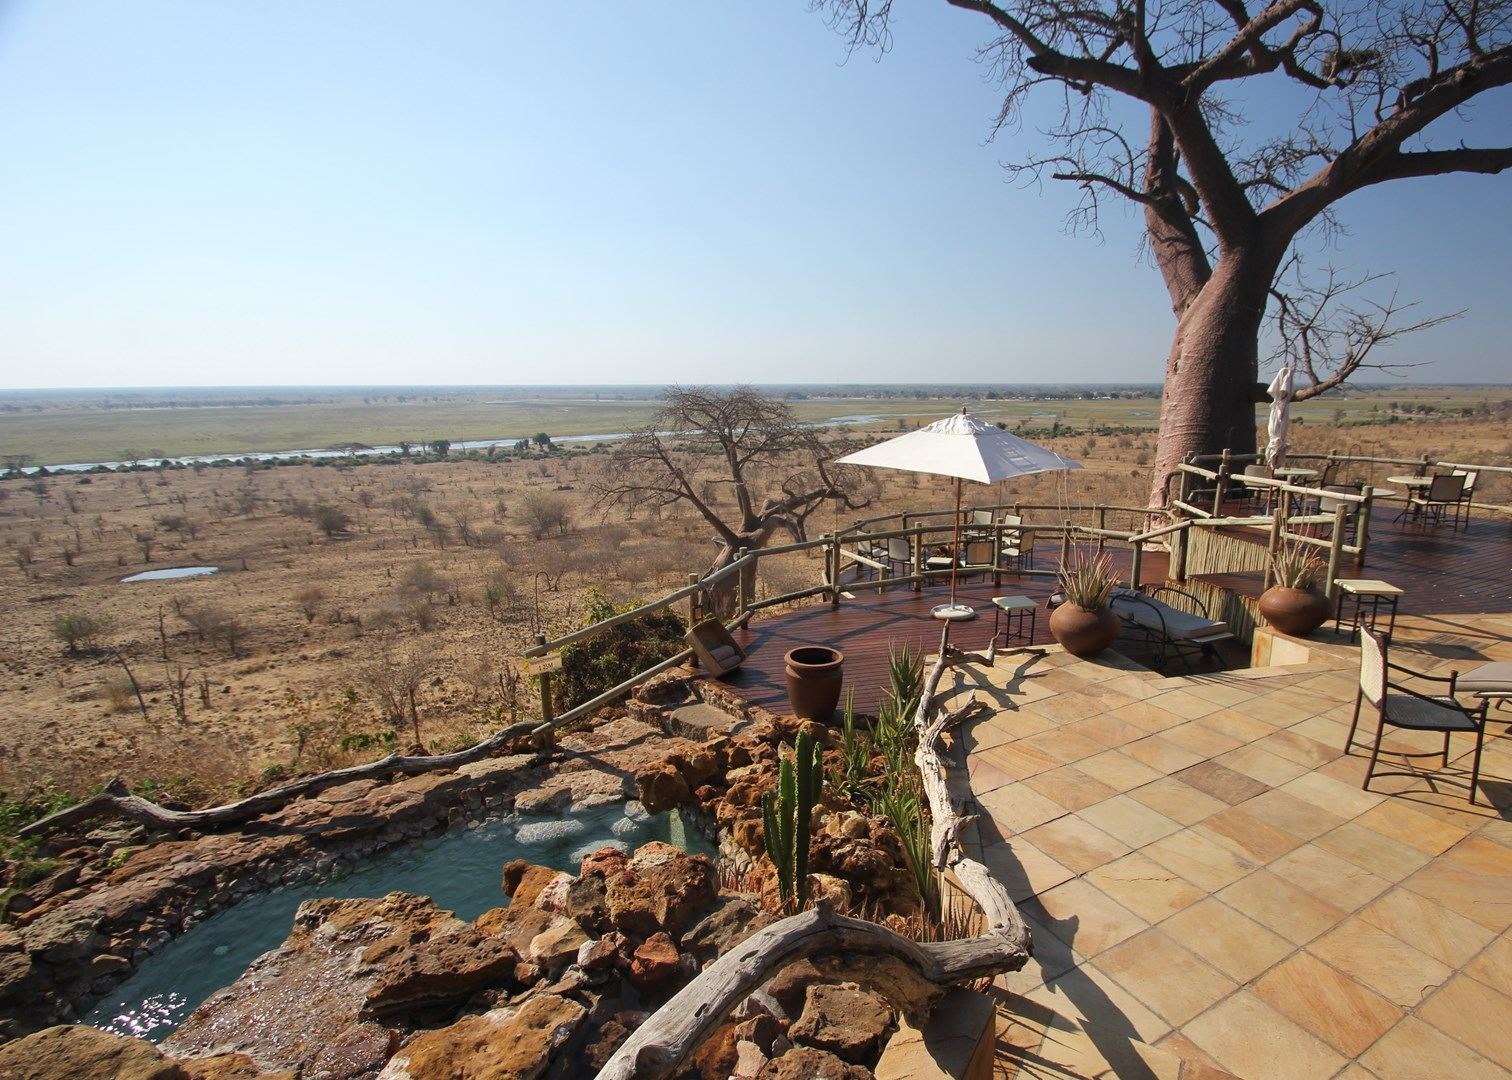 Ngoma_Safari_Lodge_SD_BSC_01